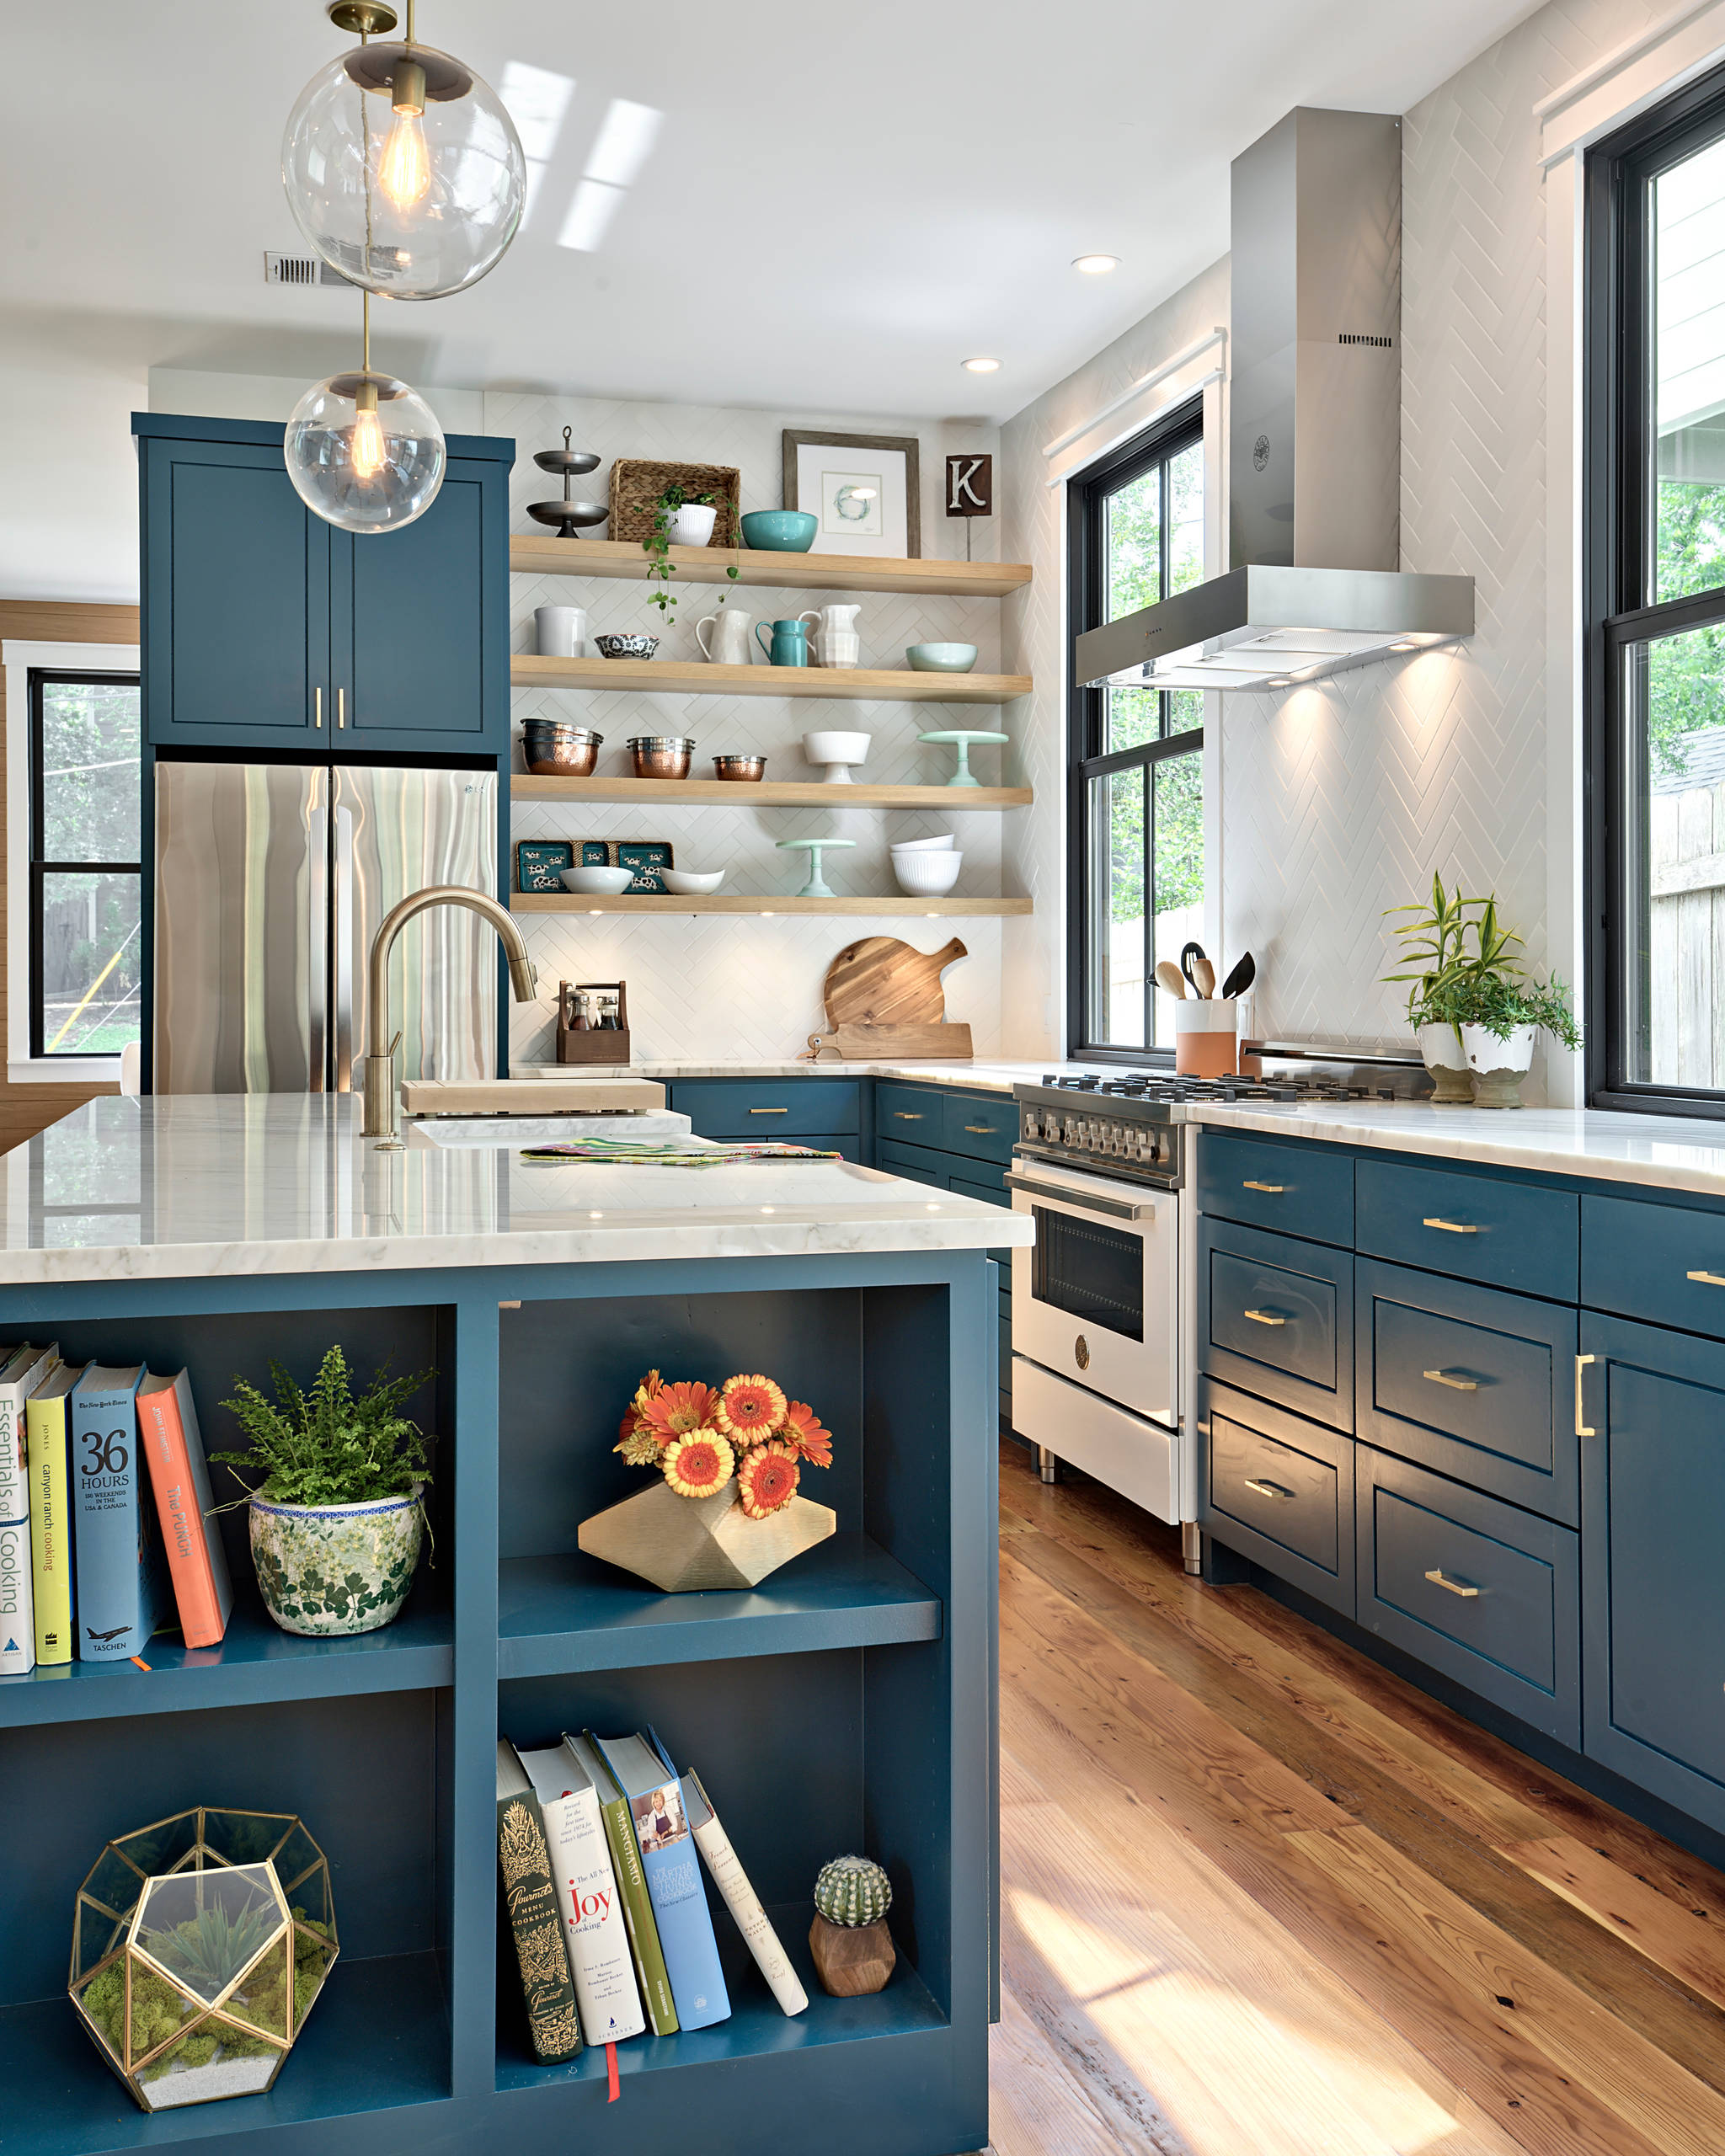 75 Beautiful Kitchen With White Appliances Pictures Ideas February 2021 Houzz